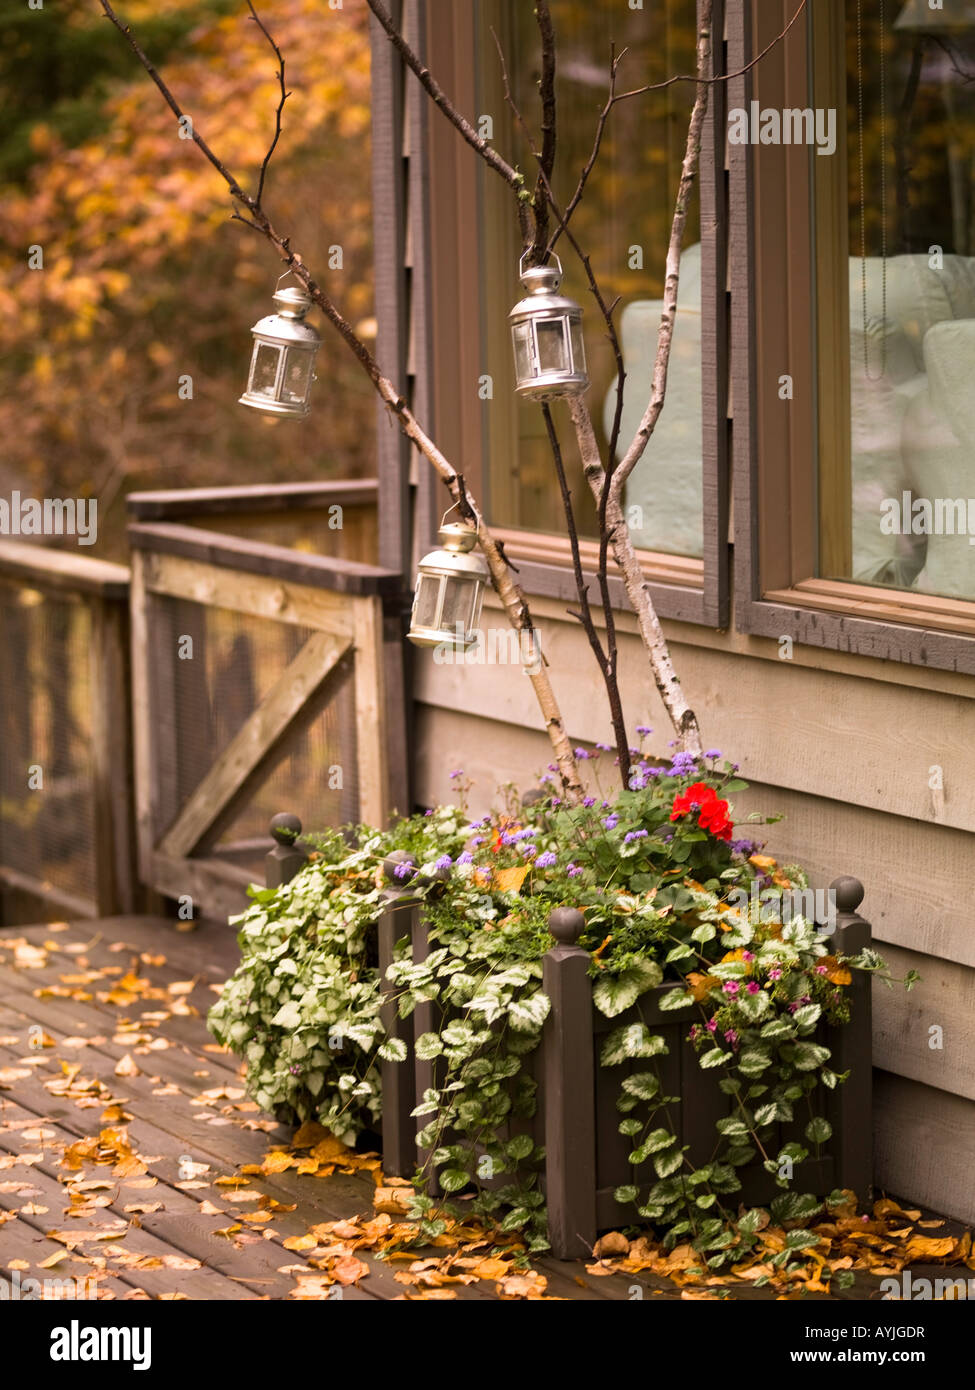 Exterior of a house in fall - Stock Image